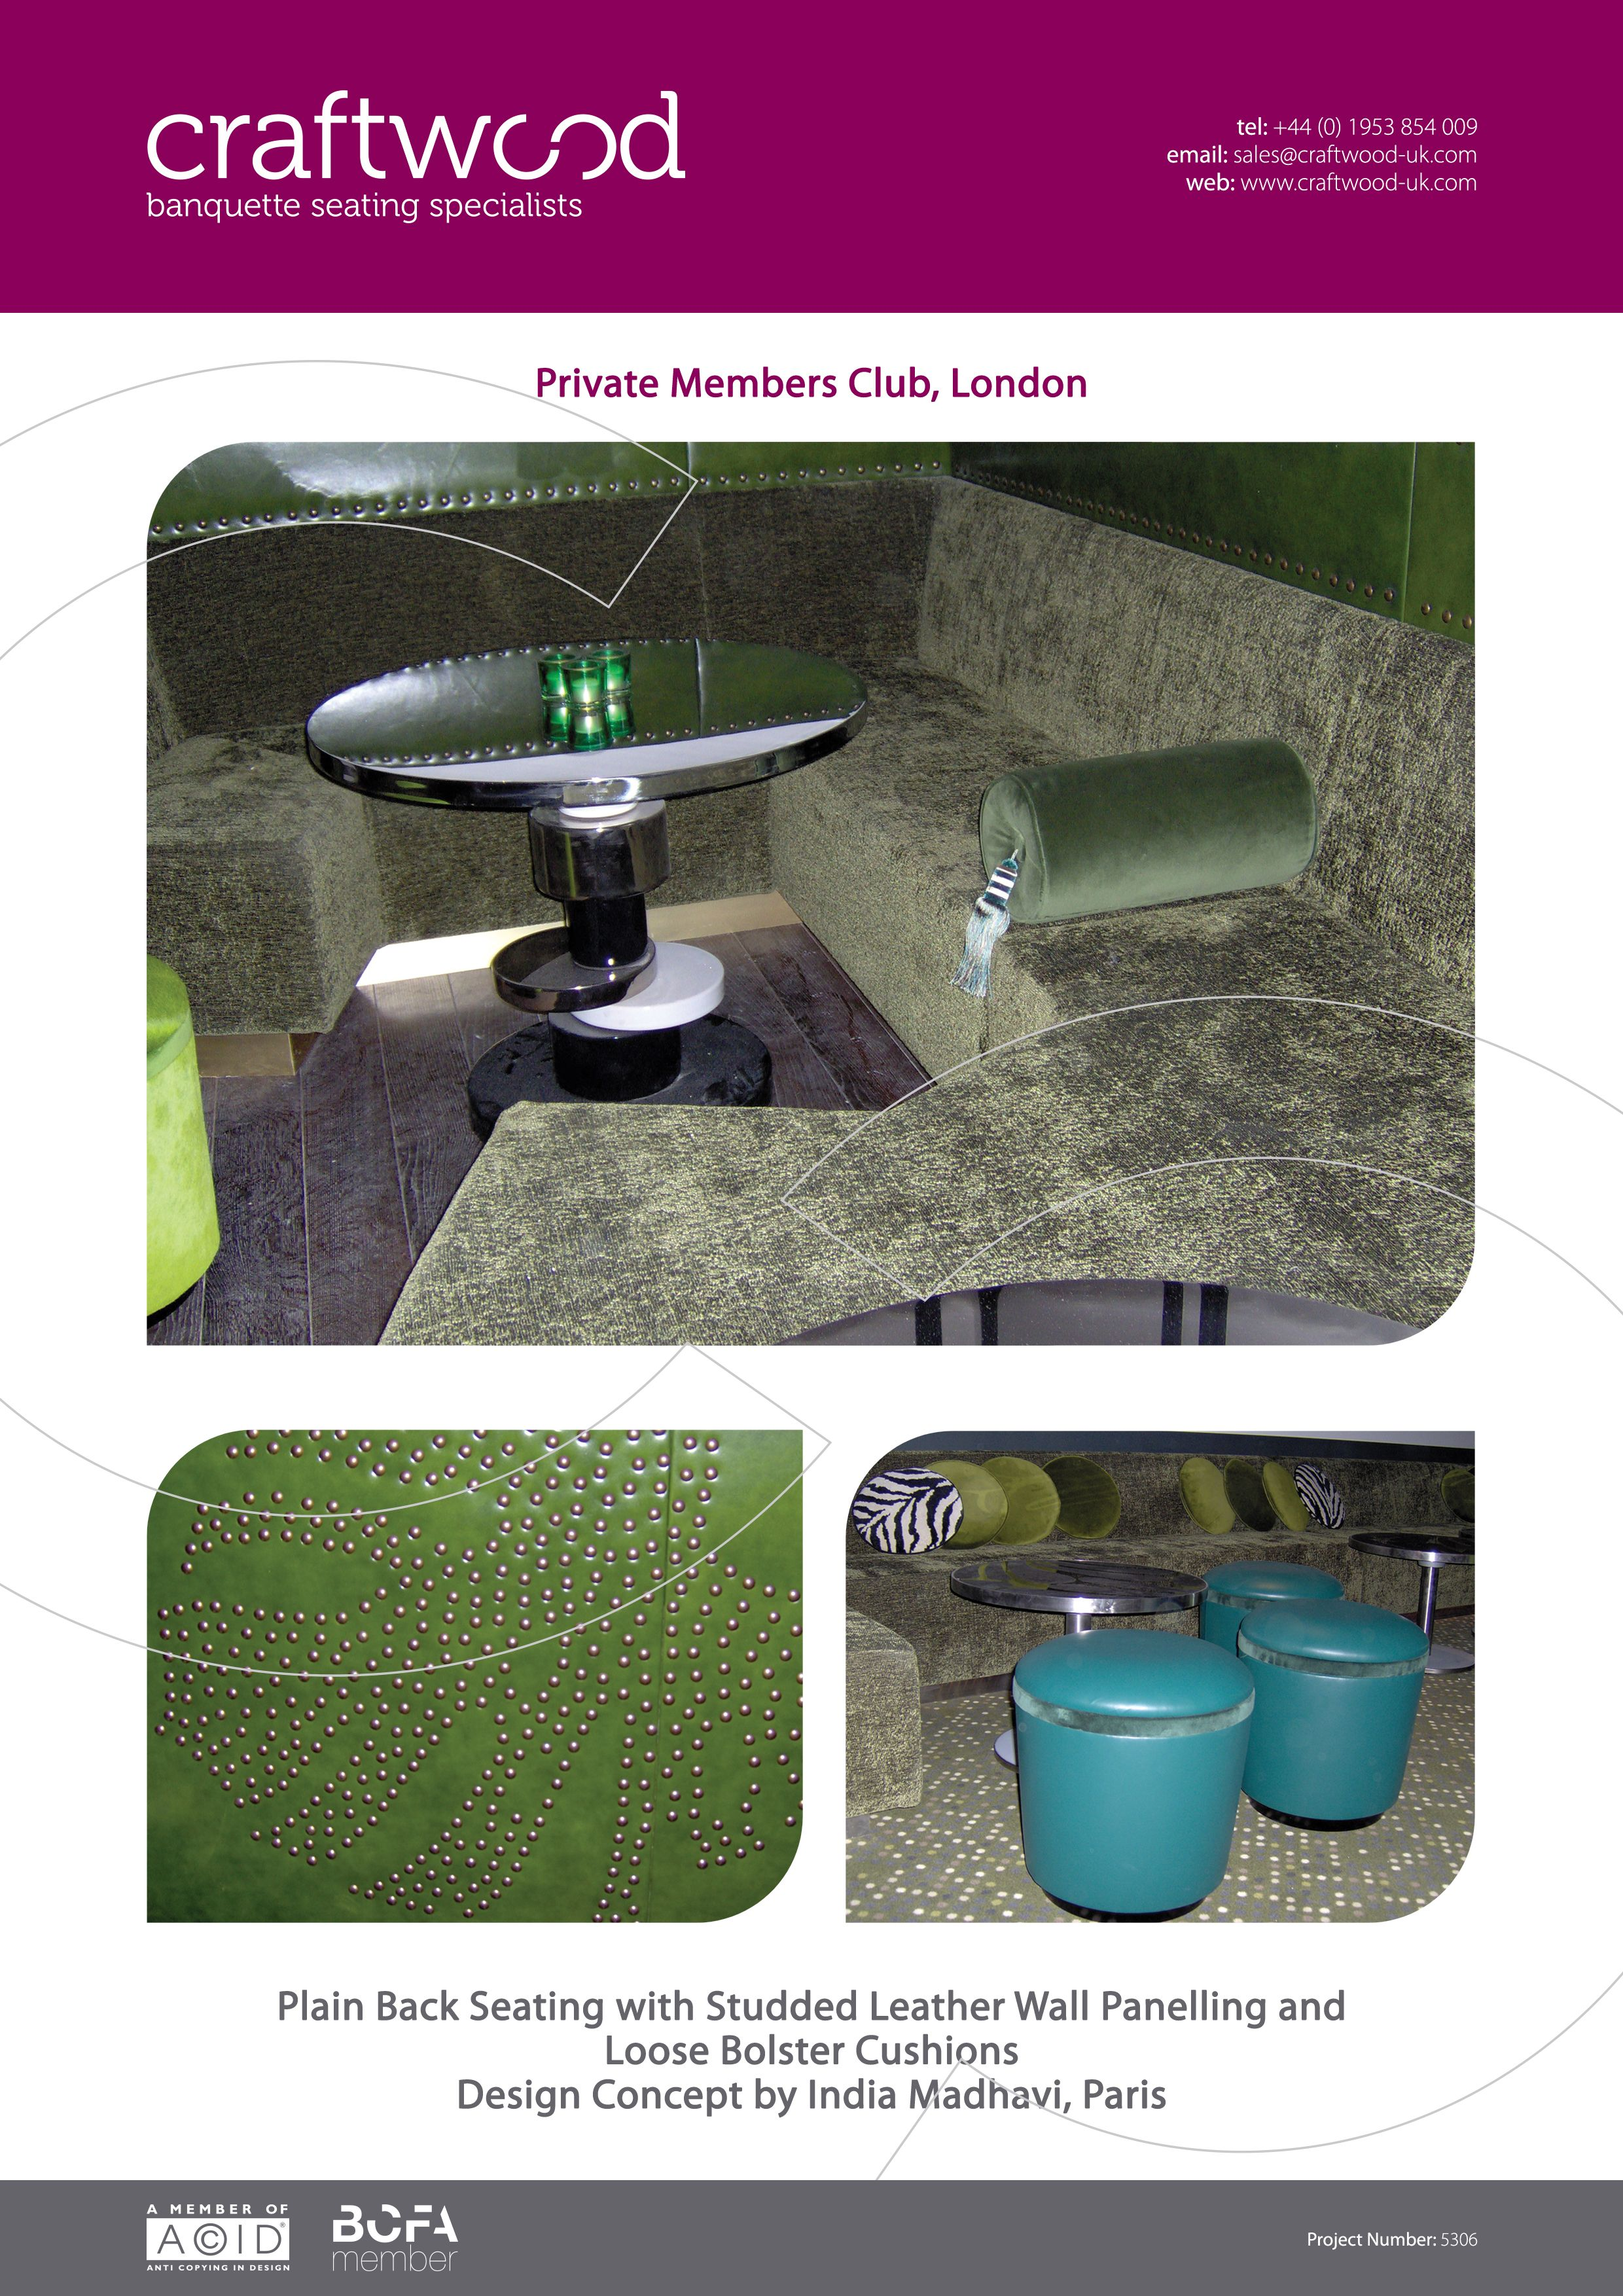 #plainback #bespoke #banquette #green #leather #wallpanel #studded #bolster #cushions #london #private #club #craftwood